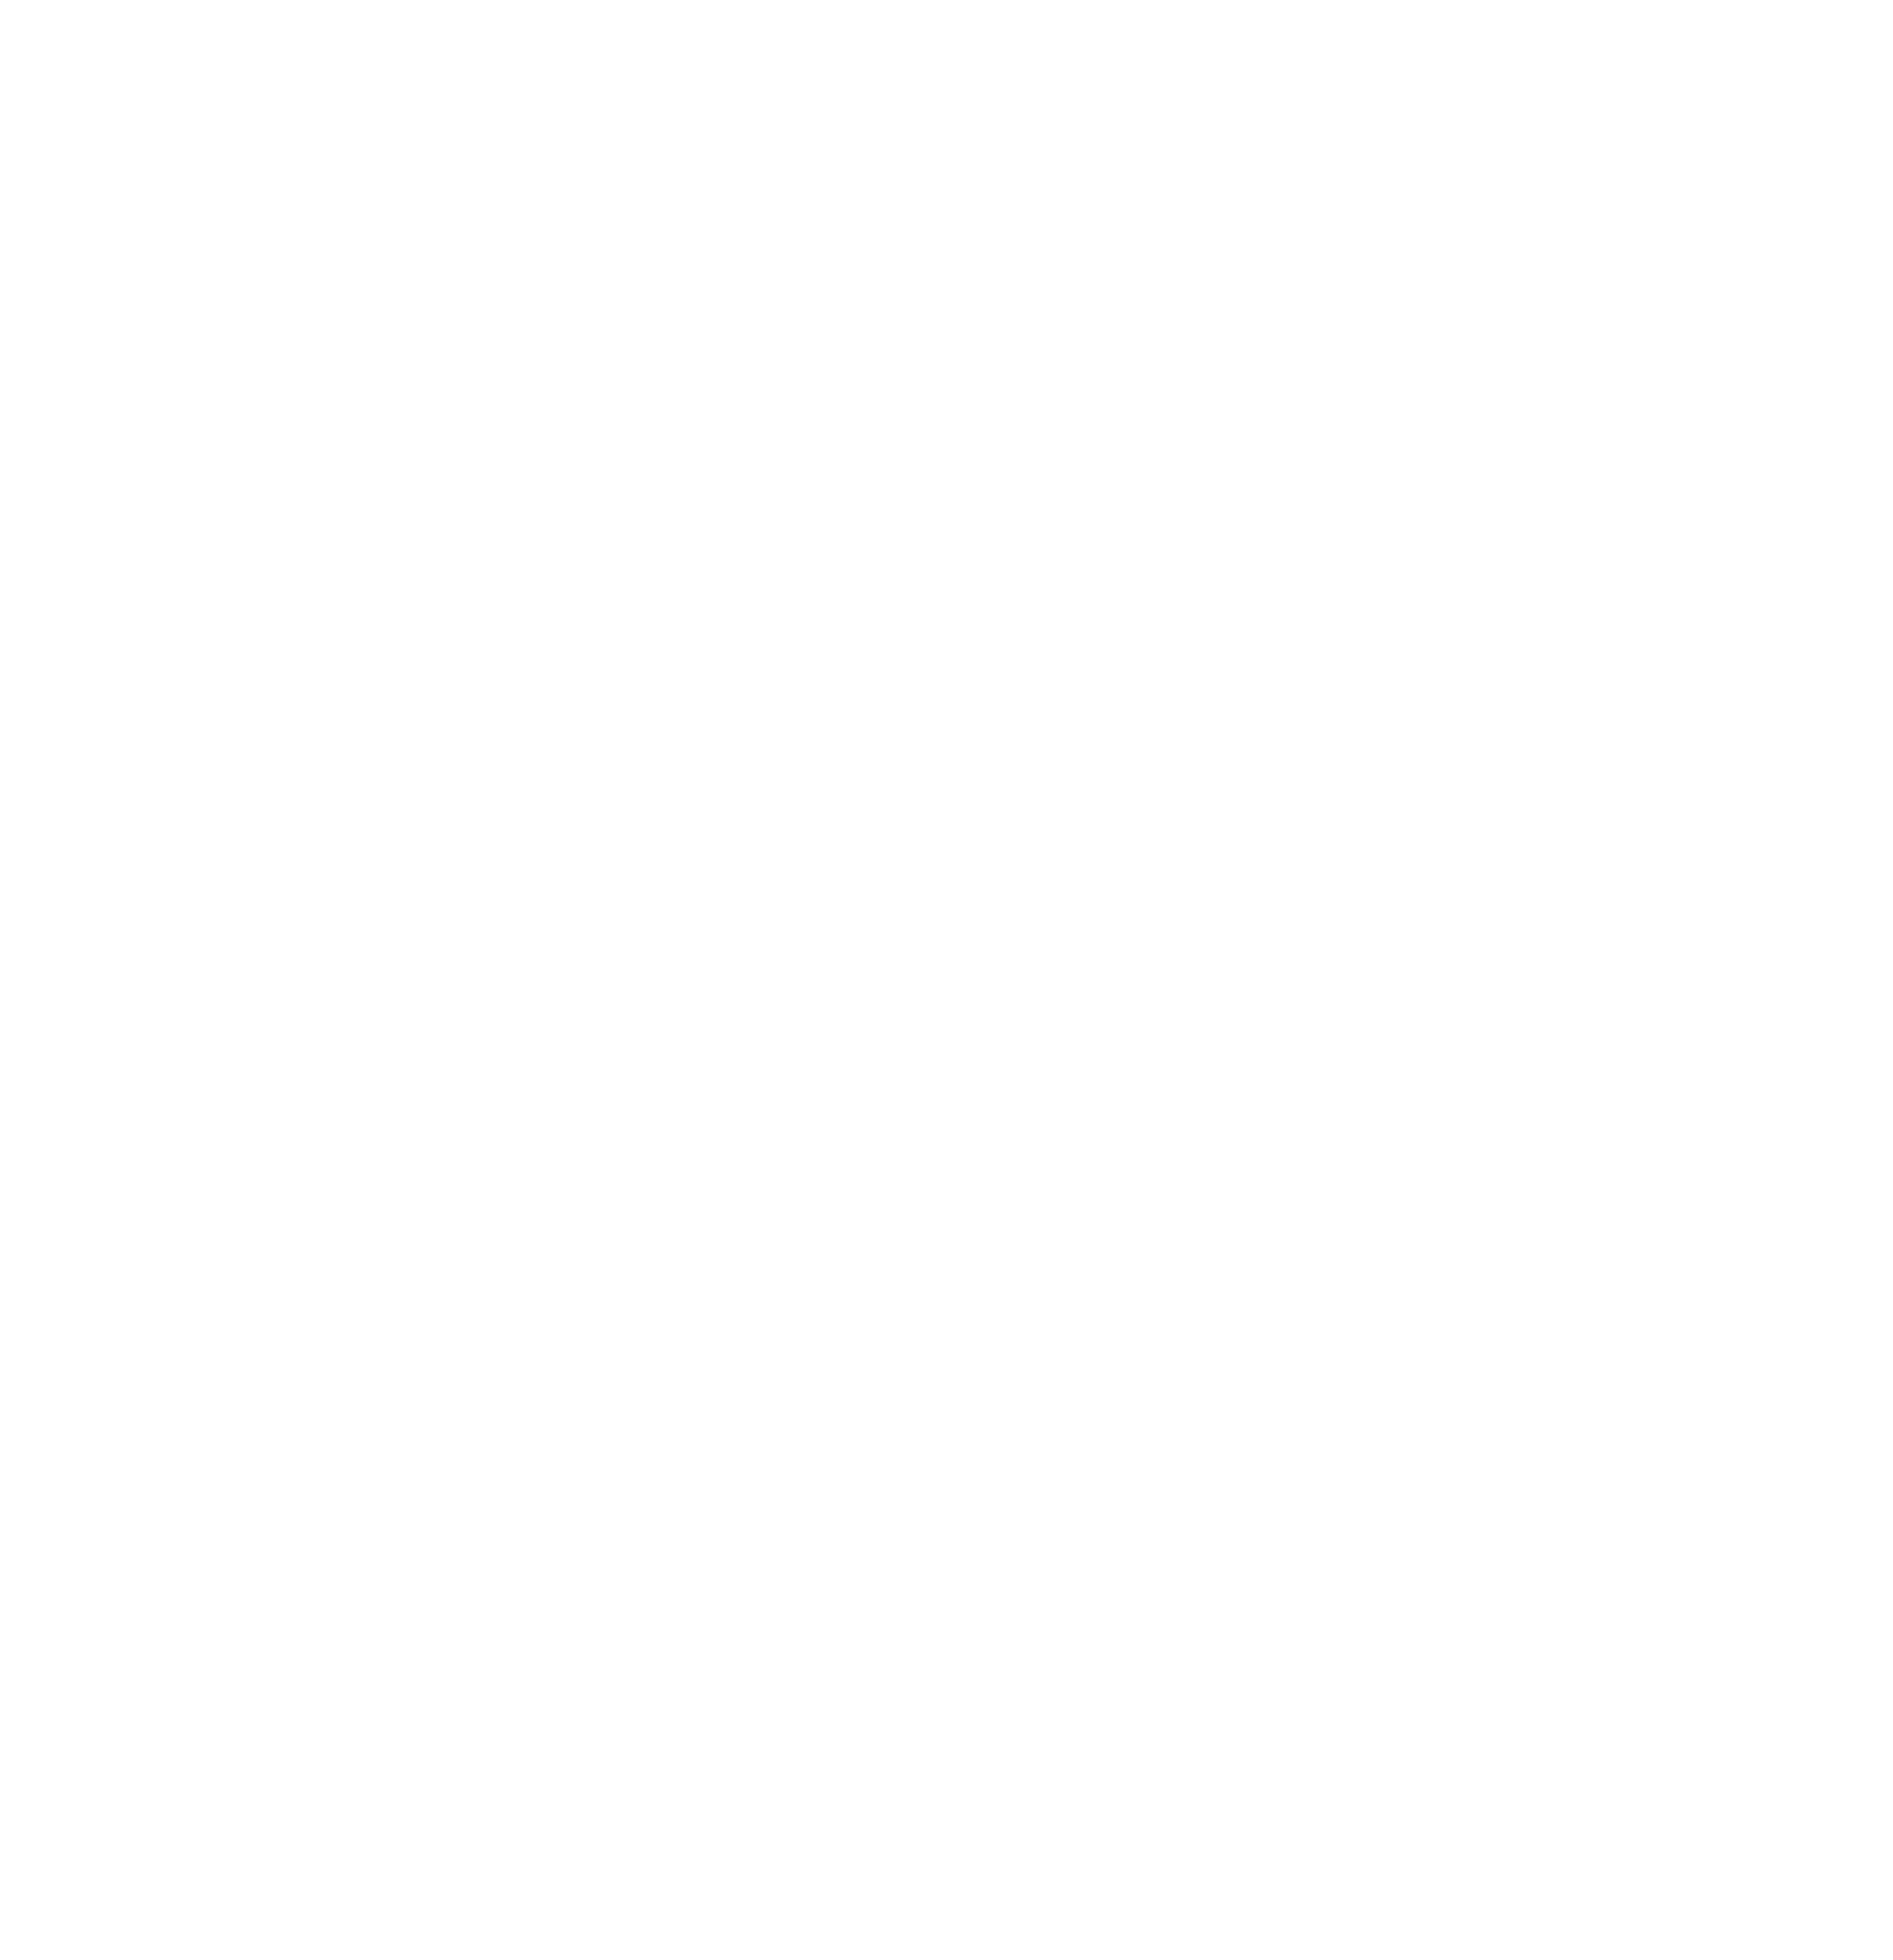 We the Dogs DC Instagram